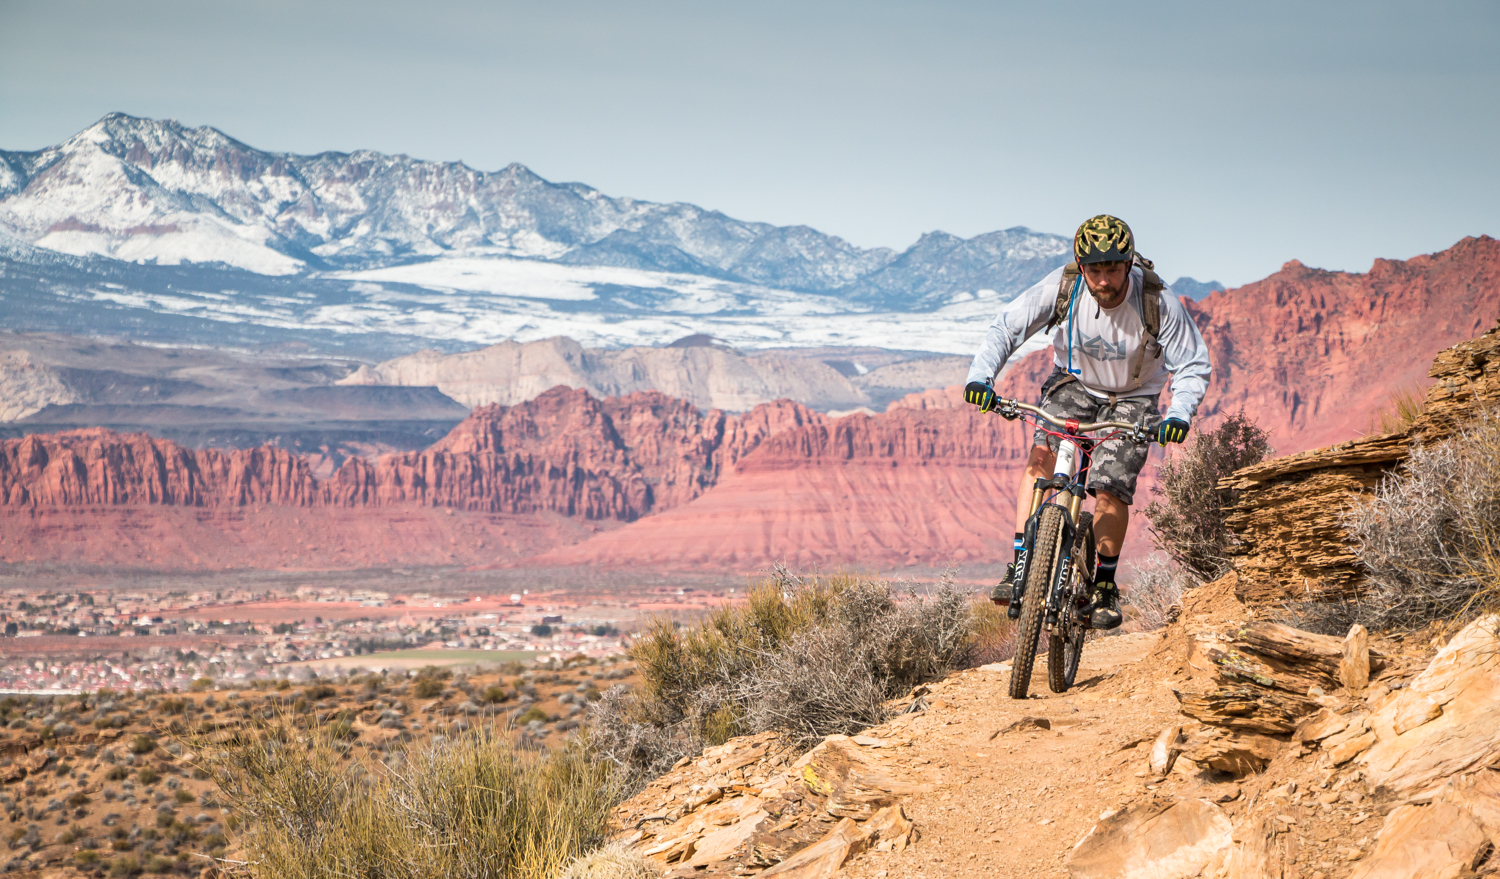 st. george utah mountain biking red rock chasing epic